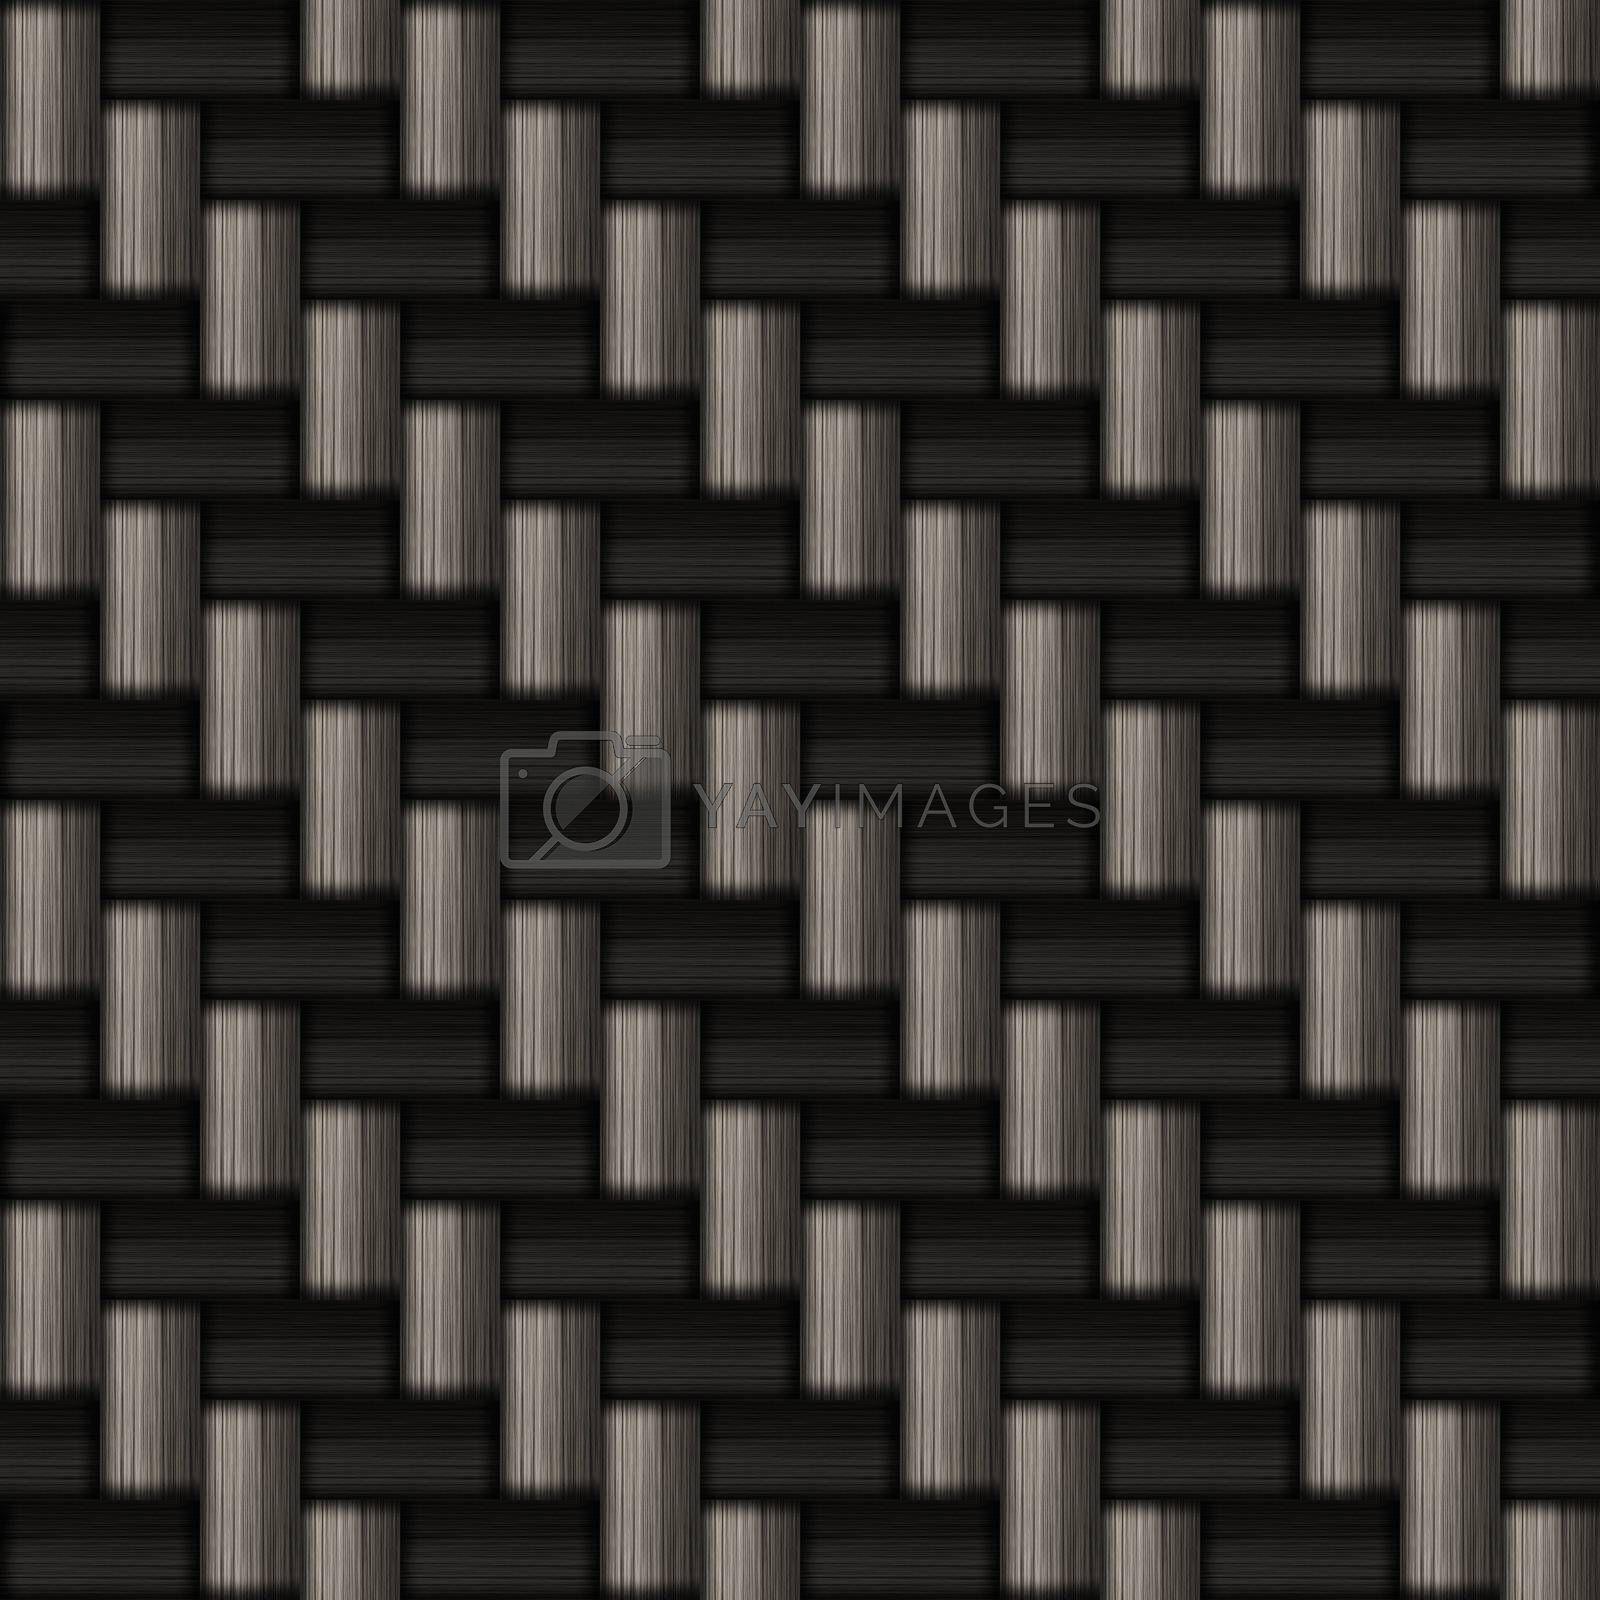 """A diagonally woven carbon fiber background texture - a great art element for that """"high-tech"""" look you are going for.  This tiles seamlessly as a pattern."""